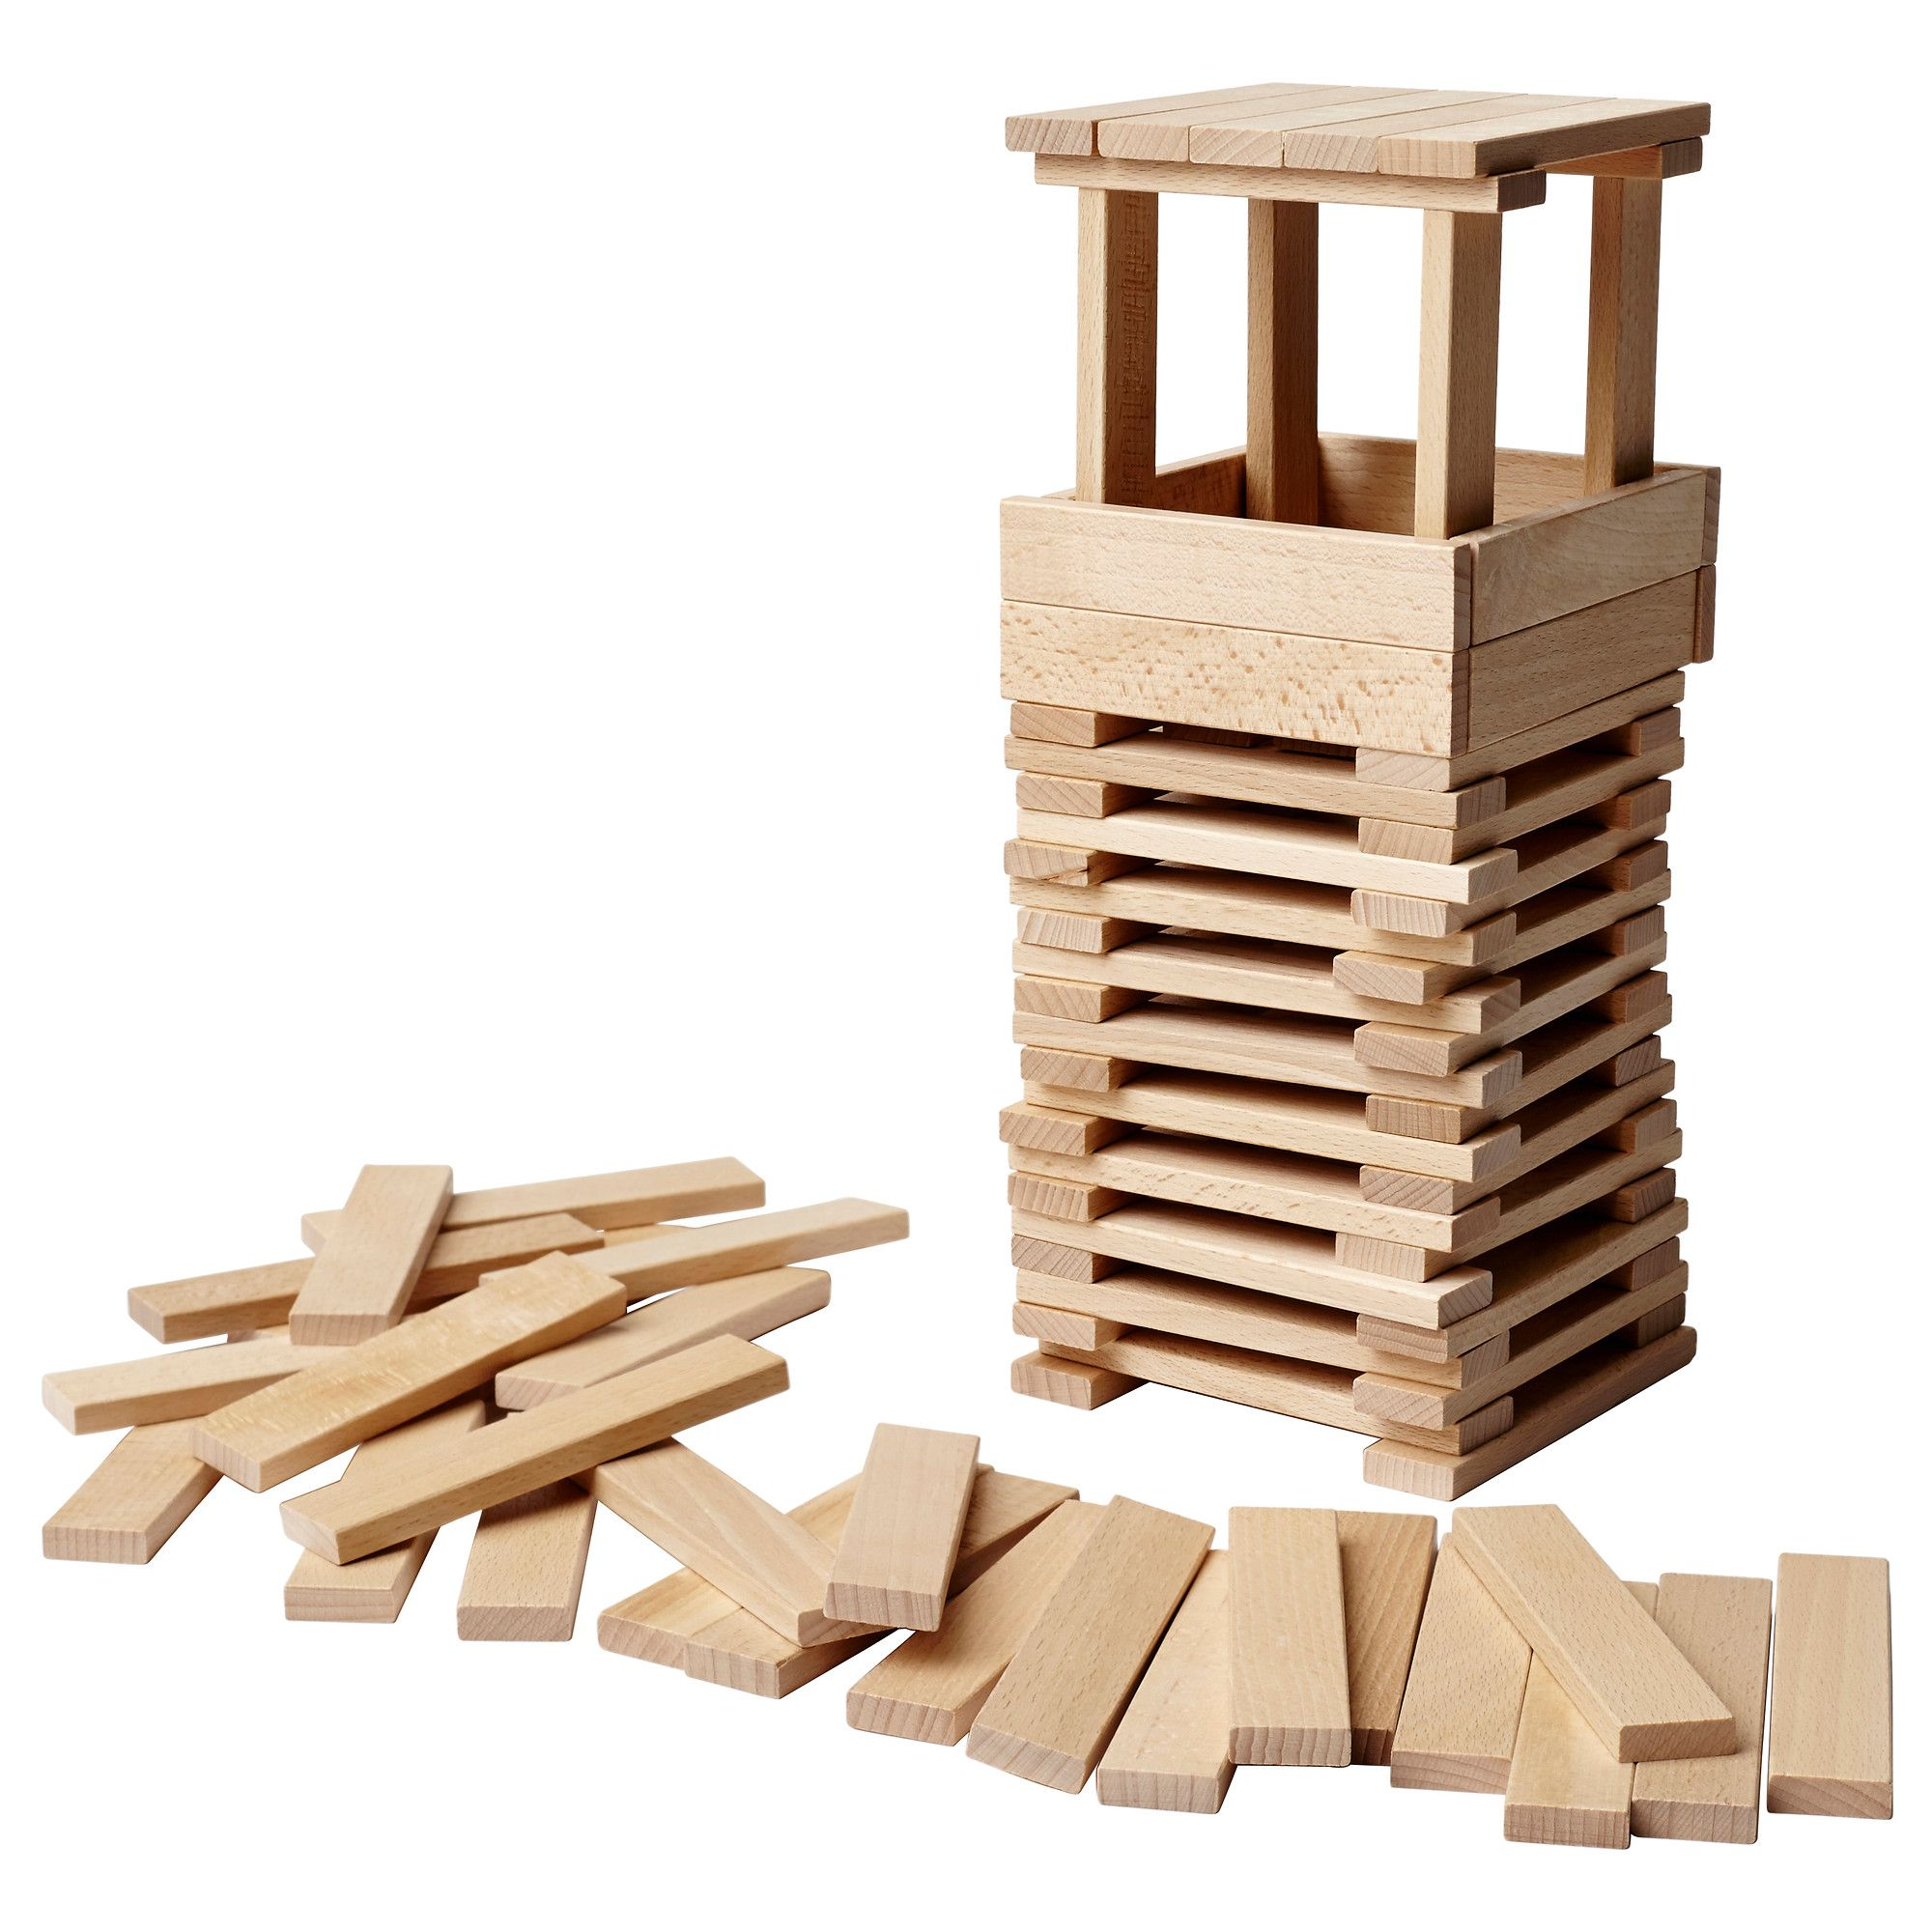 FUNDERA Building blocks IKEA $9 99 100 pack These got to